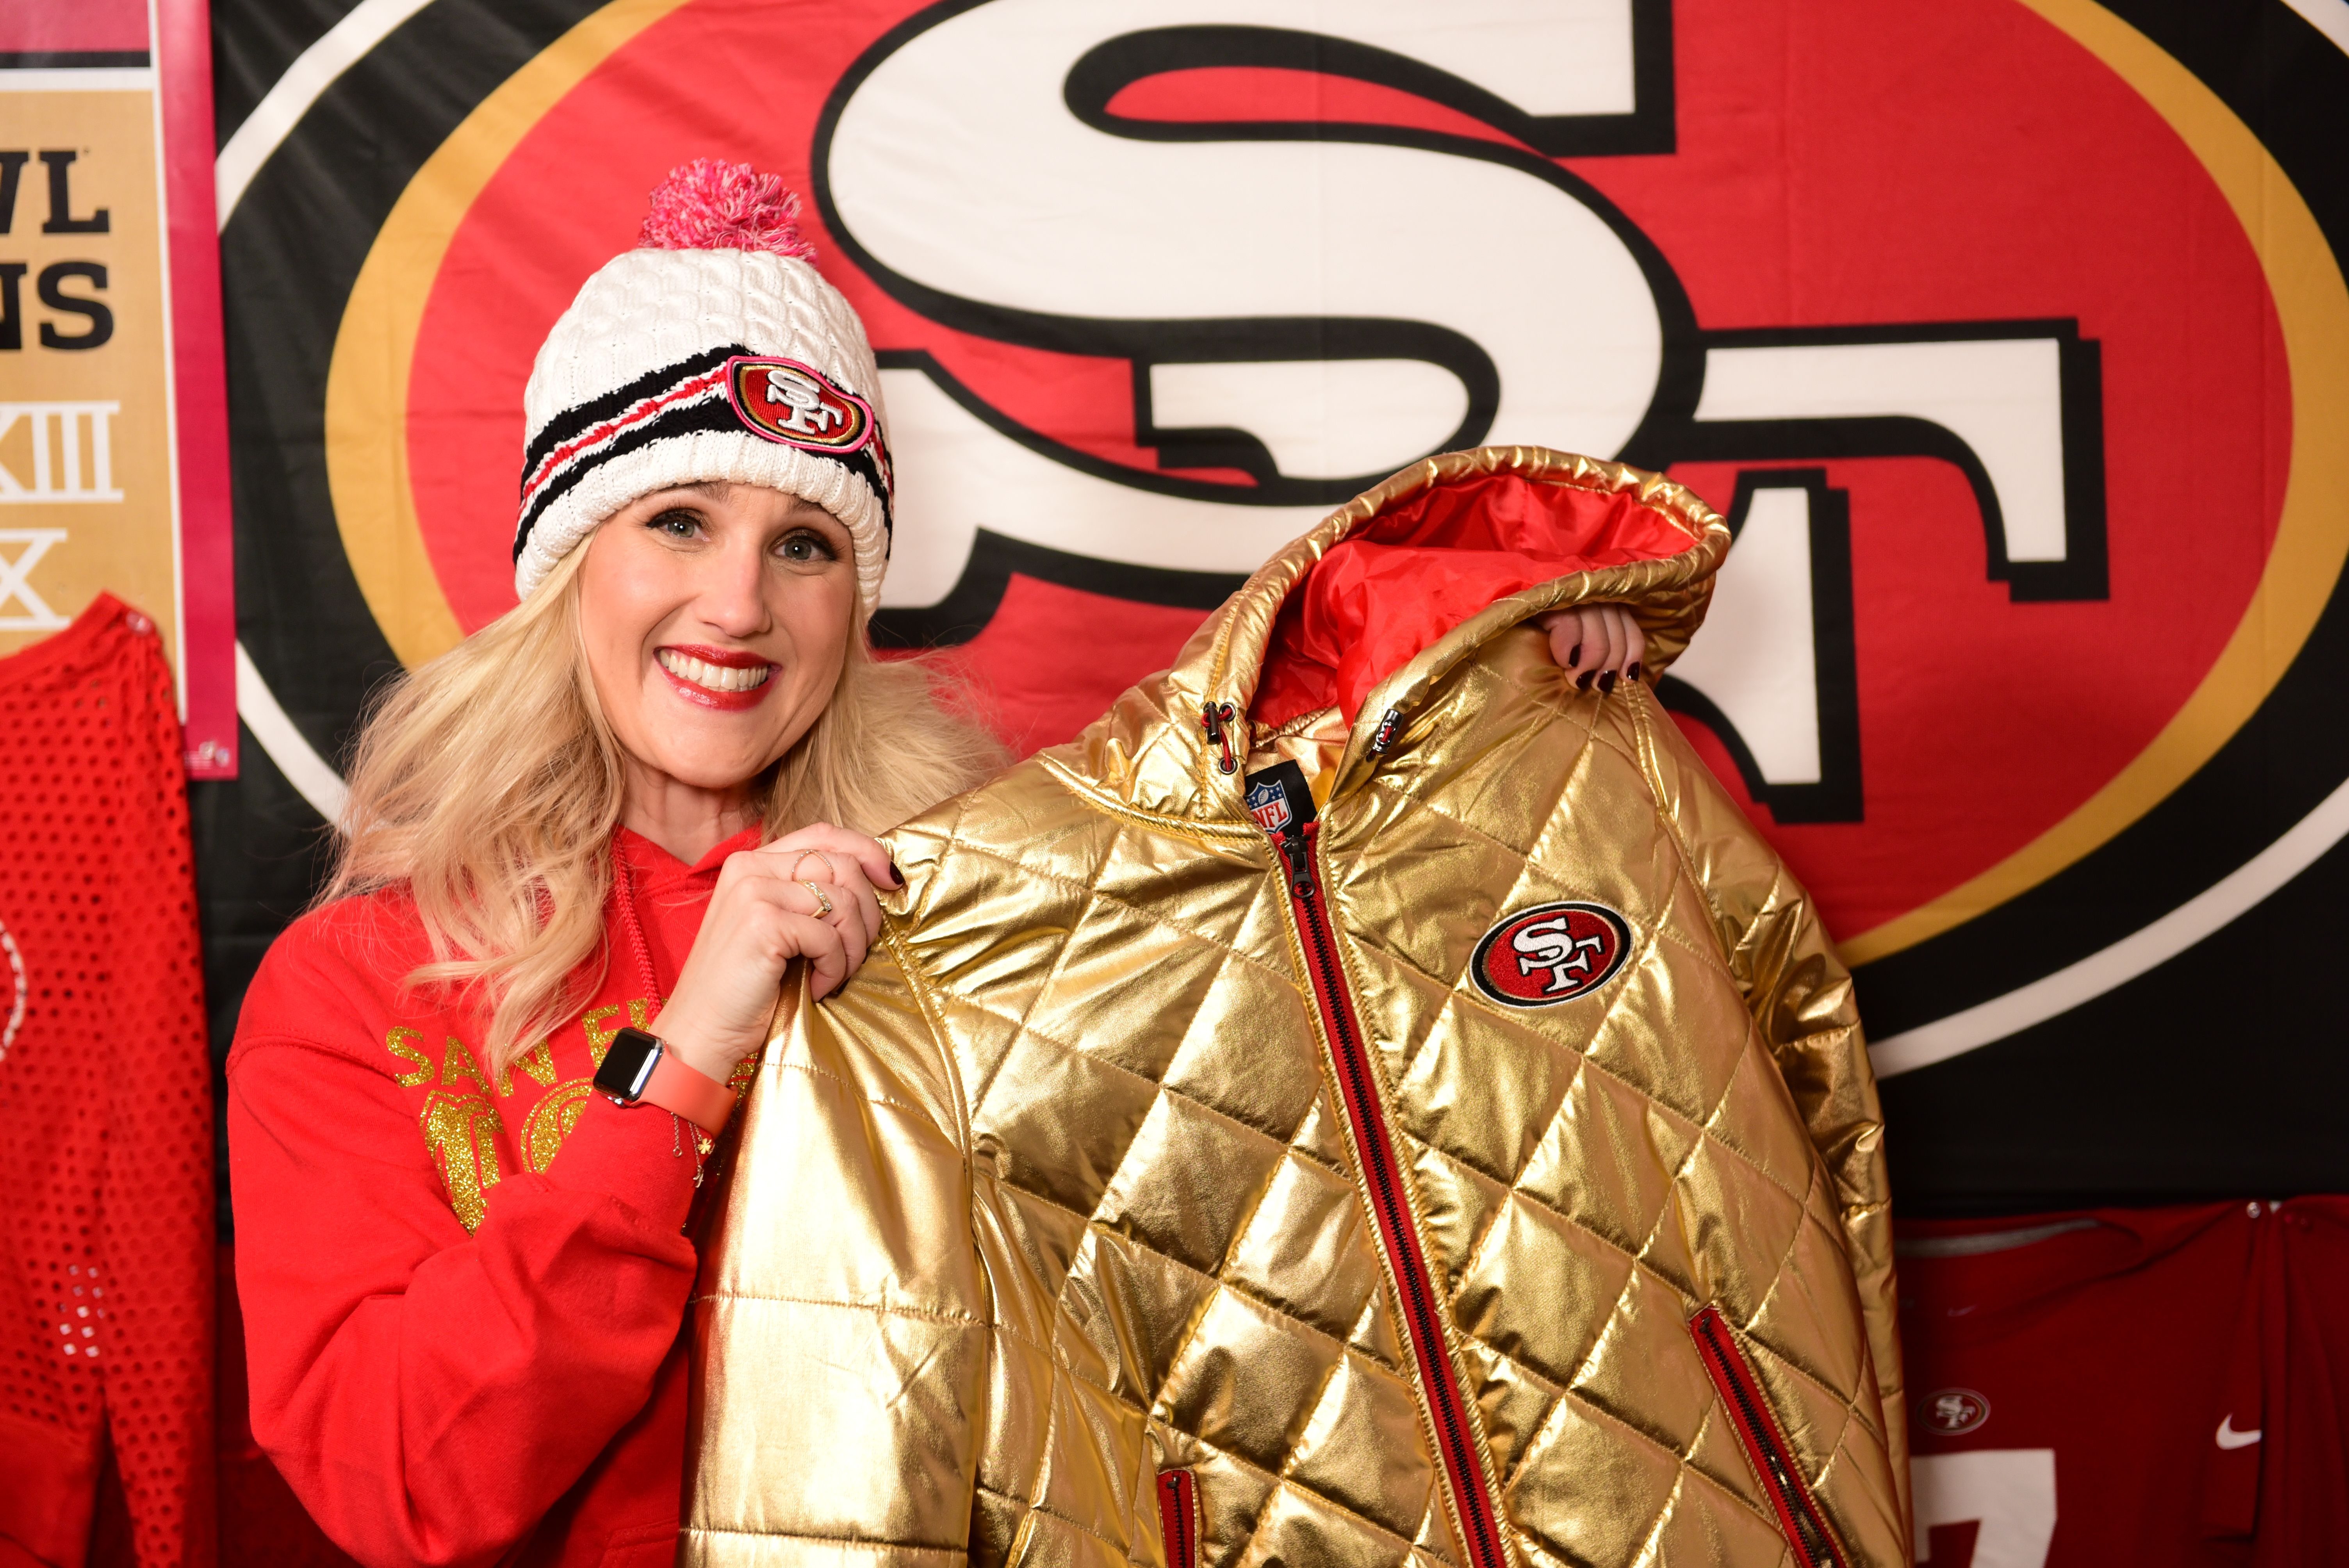 Awesome Gold Jacket From Shop49ers Com 49ers Gold Jacket Niners Levisstadium Gold Jacket Levi Stadium Style